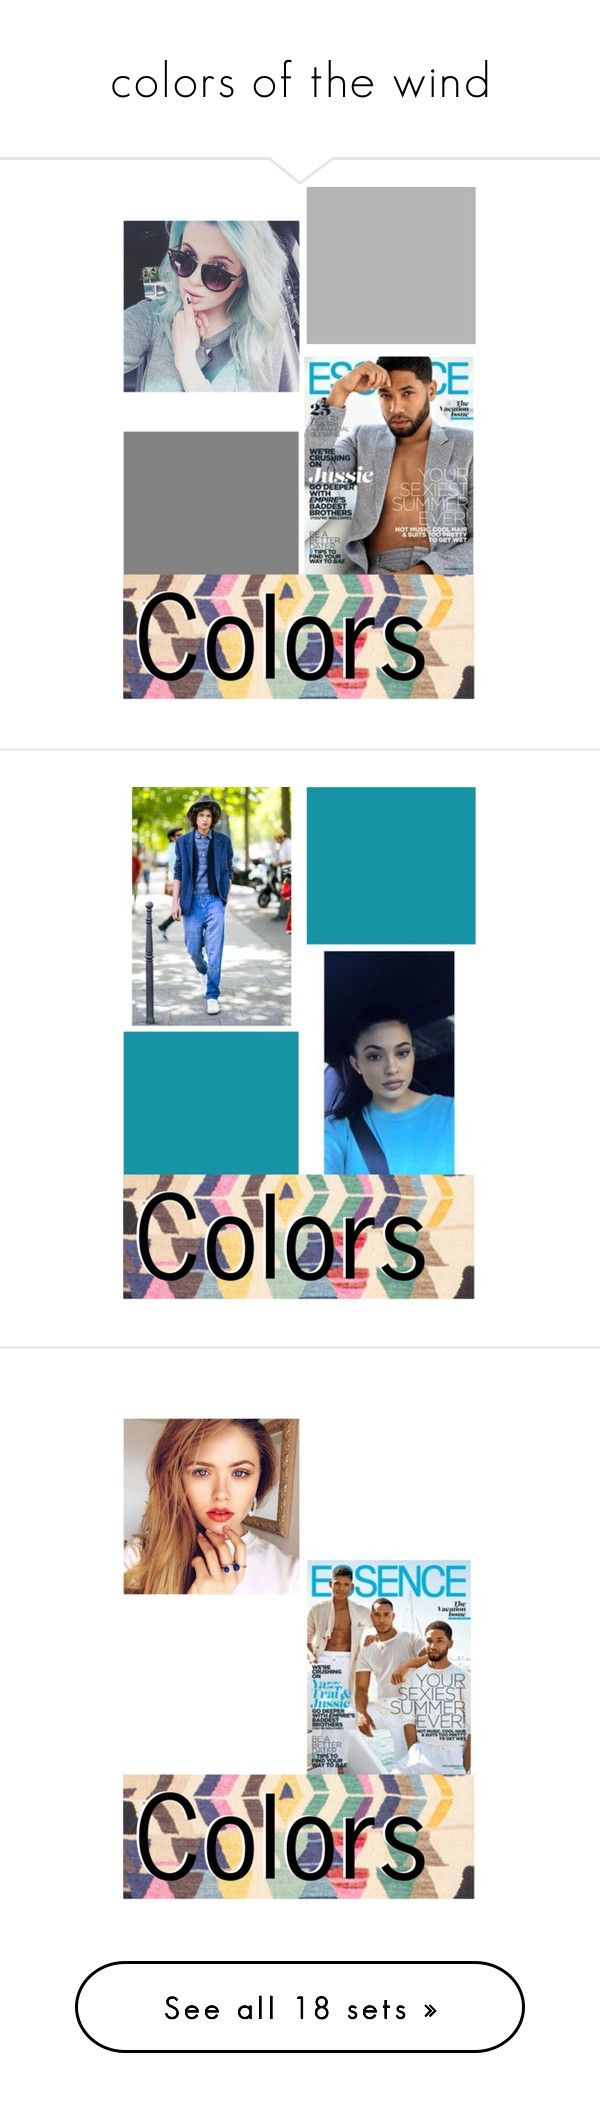 """""""colors of the wind"""" by kateloui ❤ liked on Polyvore featuring nuLOOM, men's fashion, menswear, art, beauty, Charlotte Russe, New Look, Bite, By Terry and G-Star Raw"""